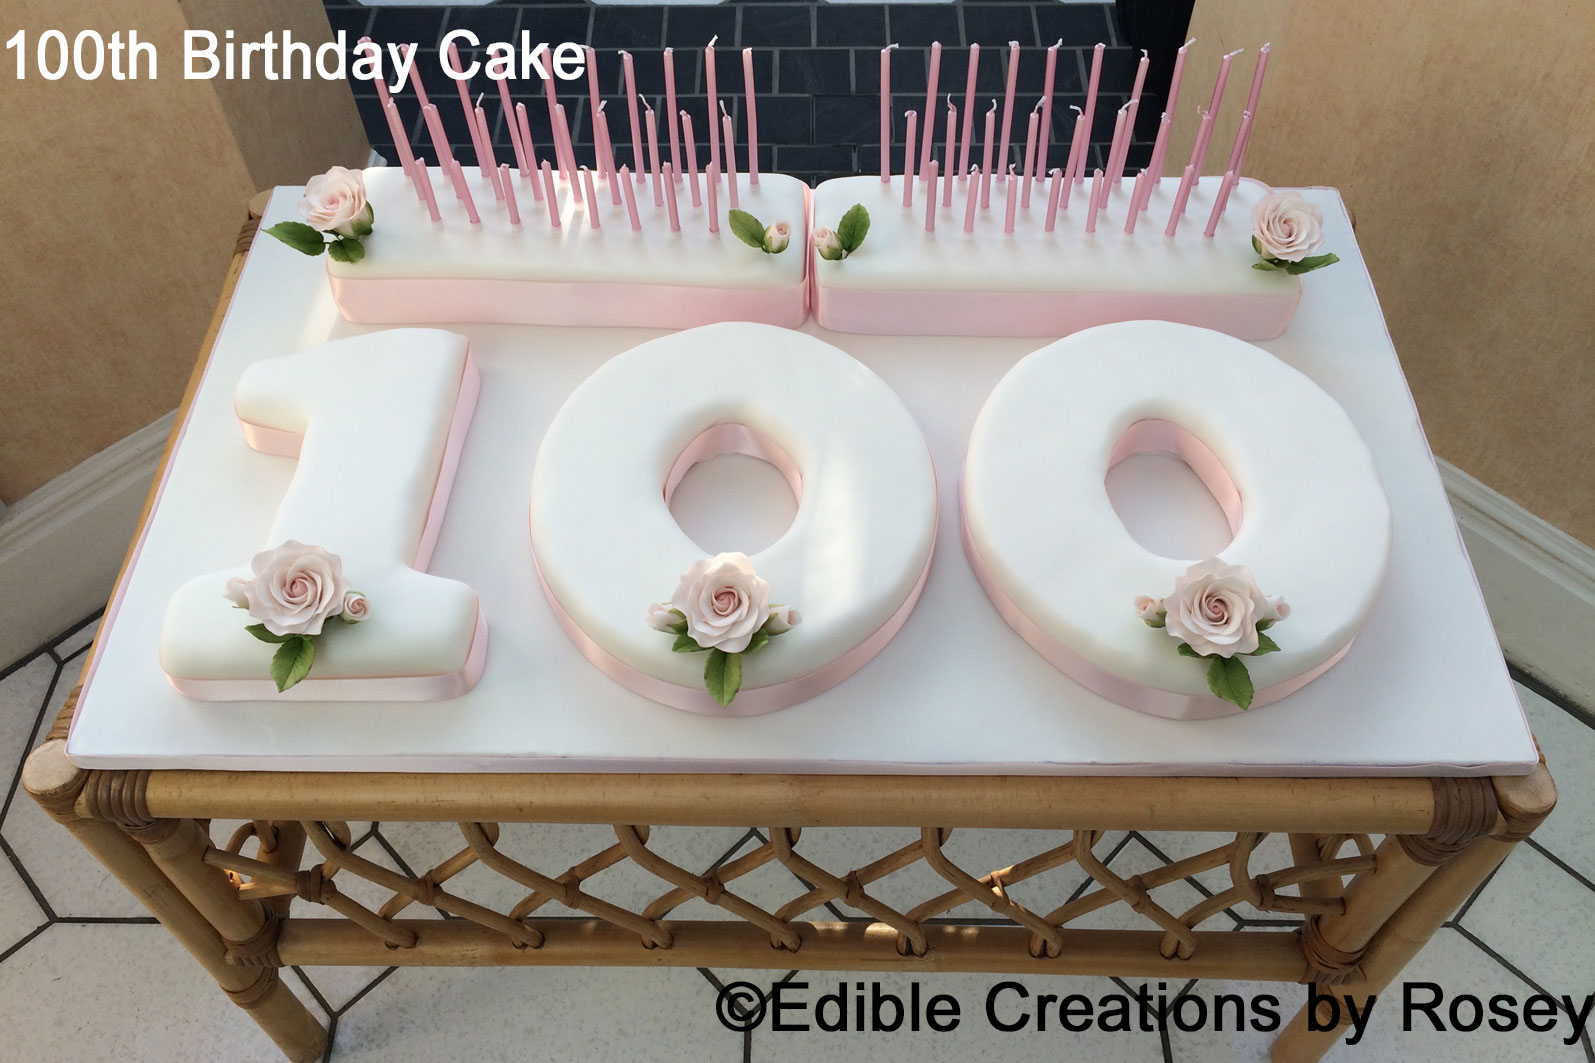 Wedding Cakes South West London